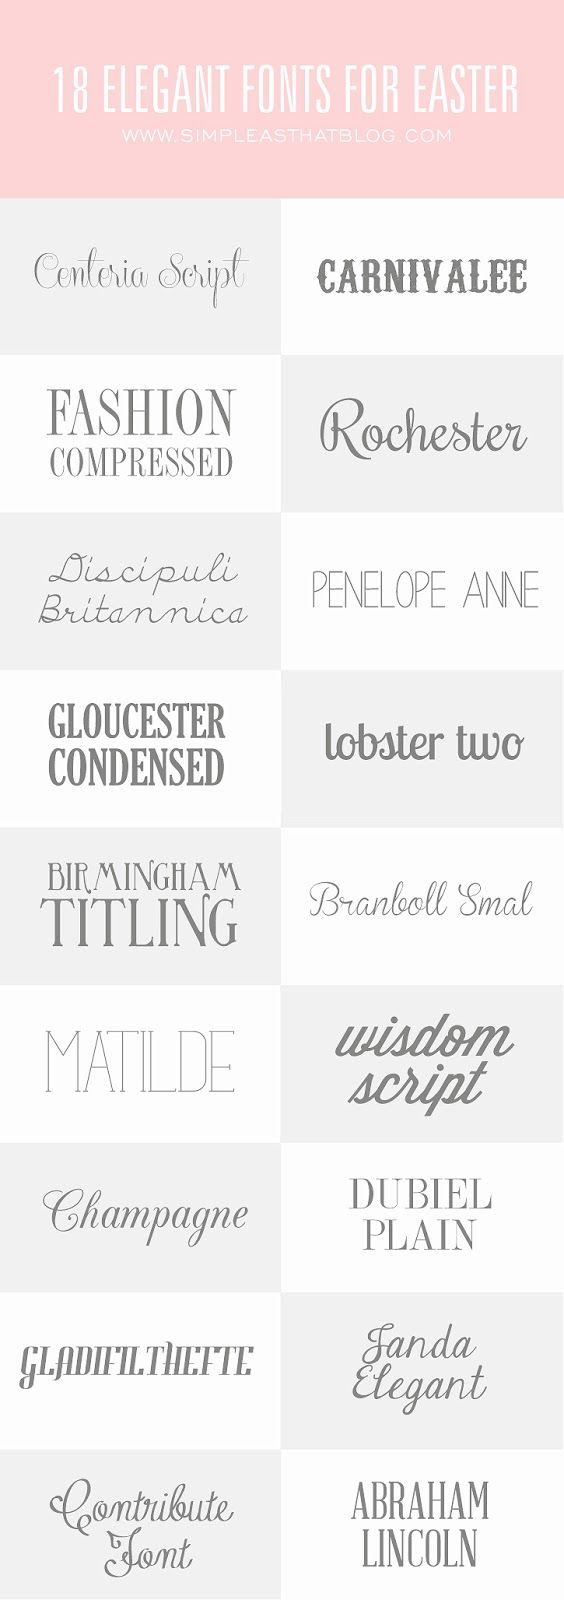 Fresh #fonts for the spring and Easter season. #typography